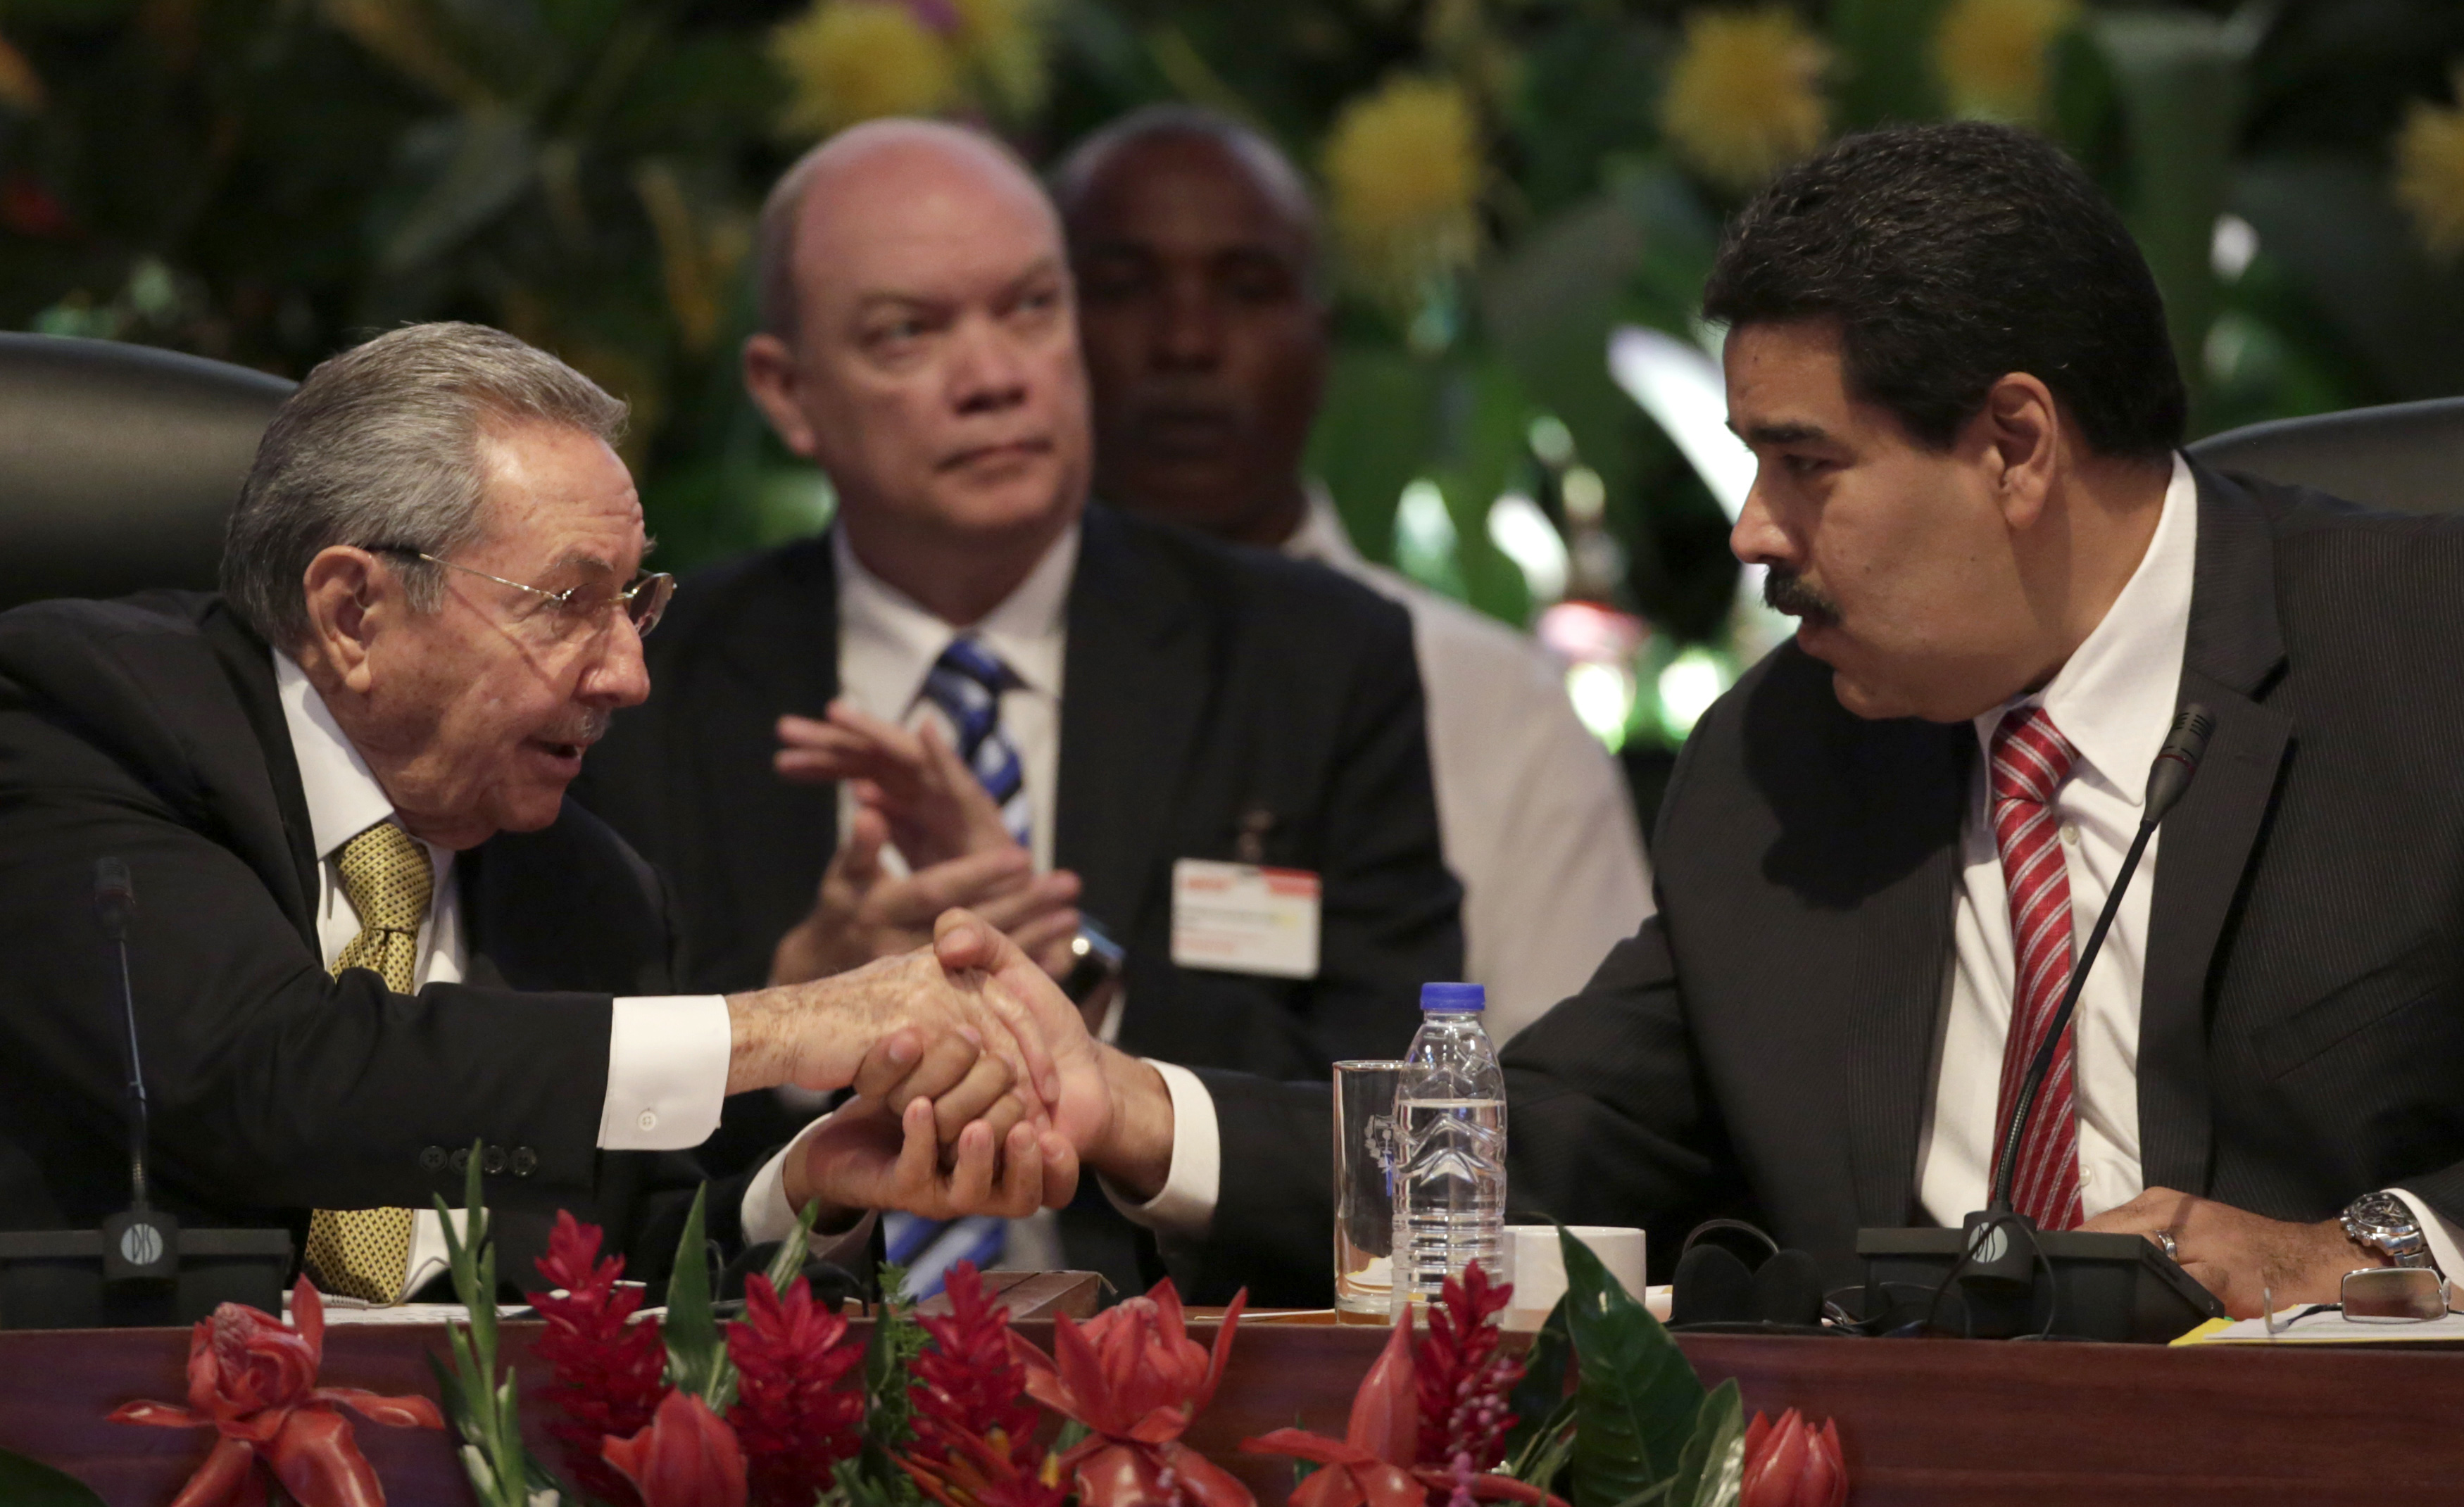 From Left: Cuba's President Raul Castro shakes hands with Venezuela's President Nicolas Maduro during the opening session of the 10th ALBA alliance summit in Havana on Dec. 14, 2014.